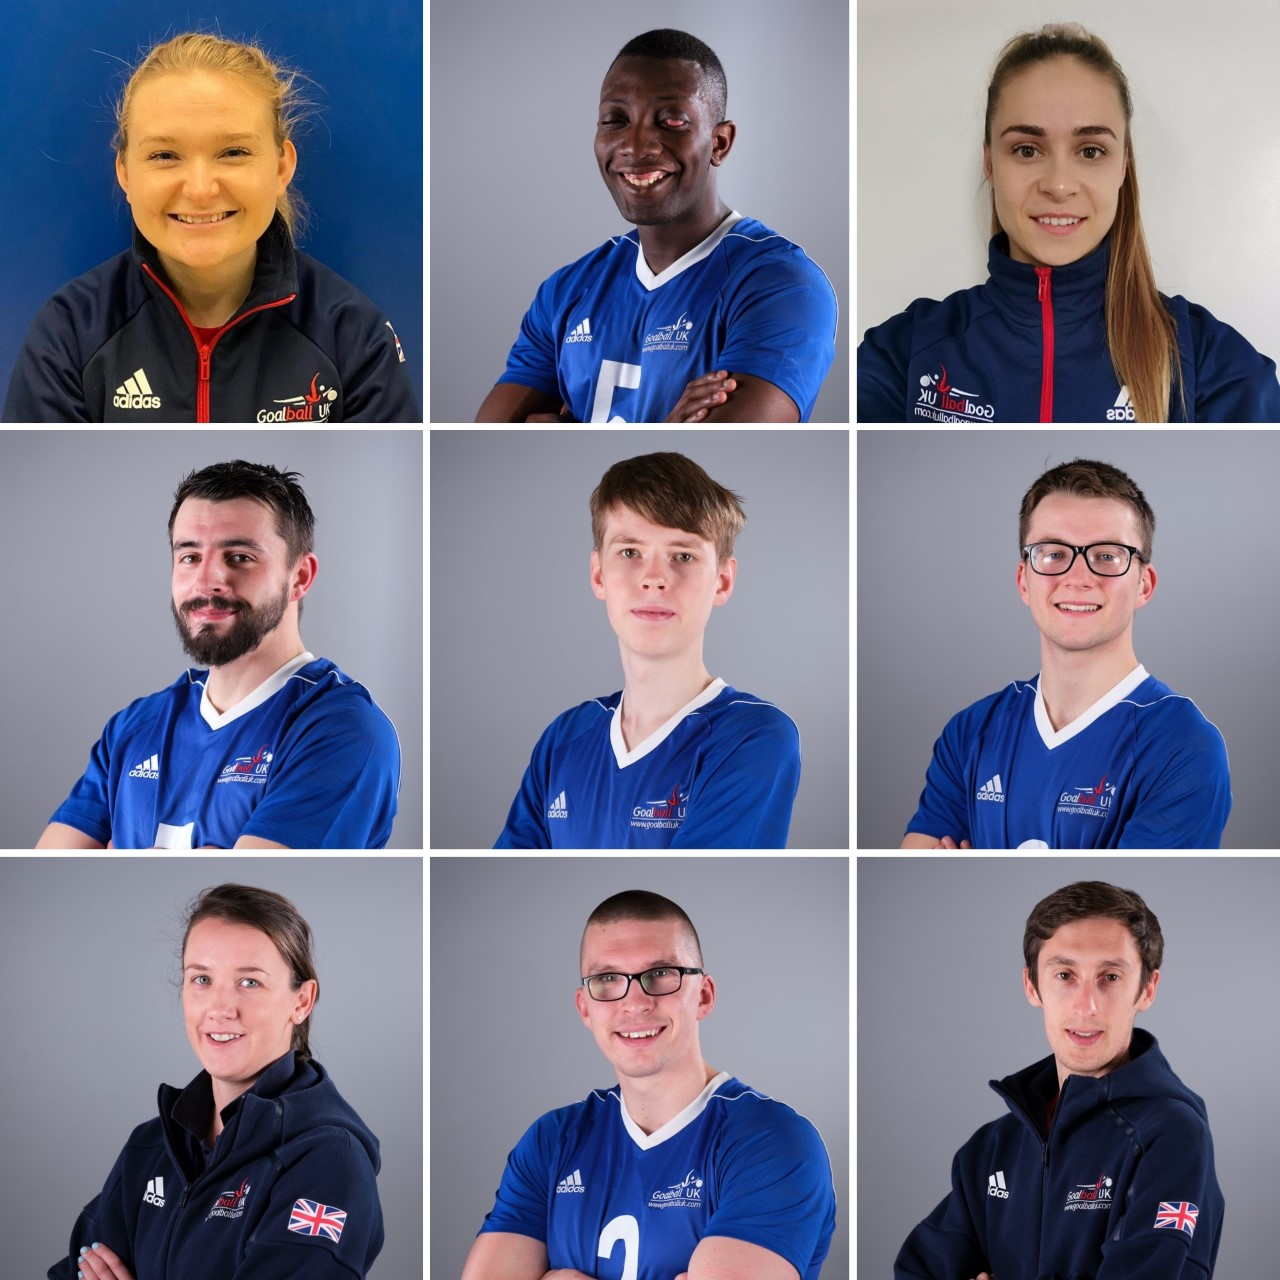 GB Men's team virtual group photo, with an individual photo of each team member shown.